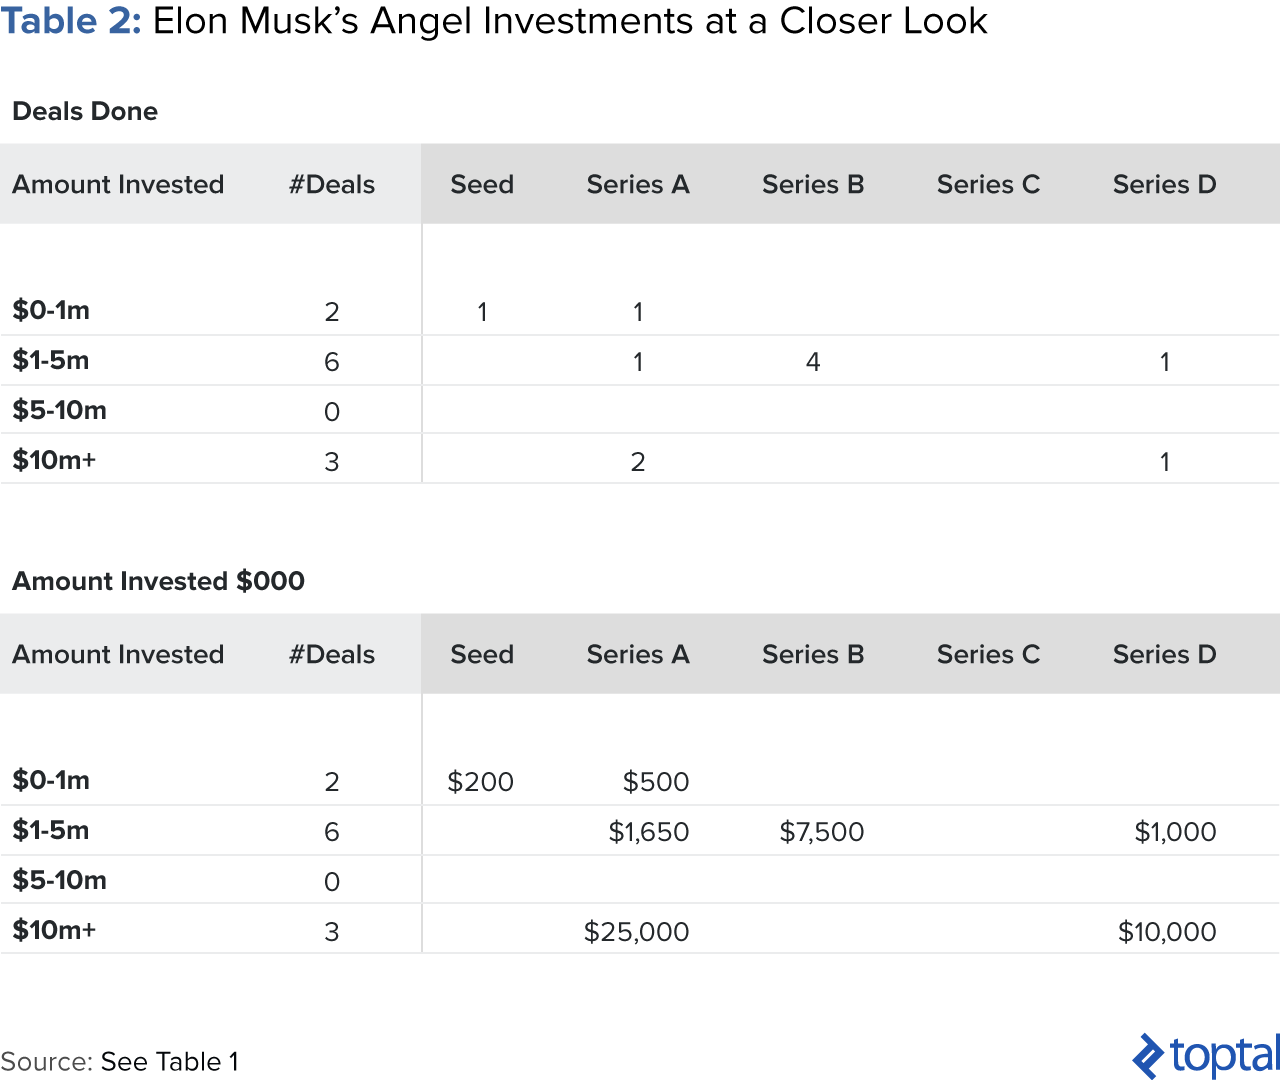 Table 2: Elon Musk's Angel Investments at a Closer Look